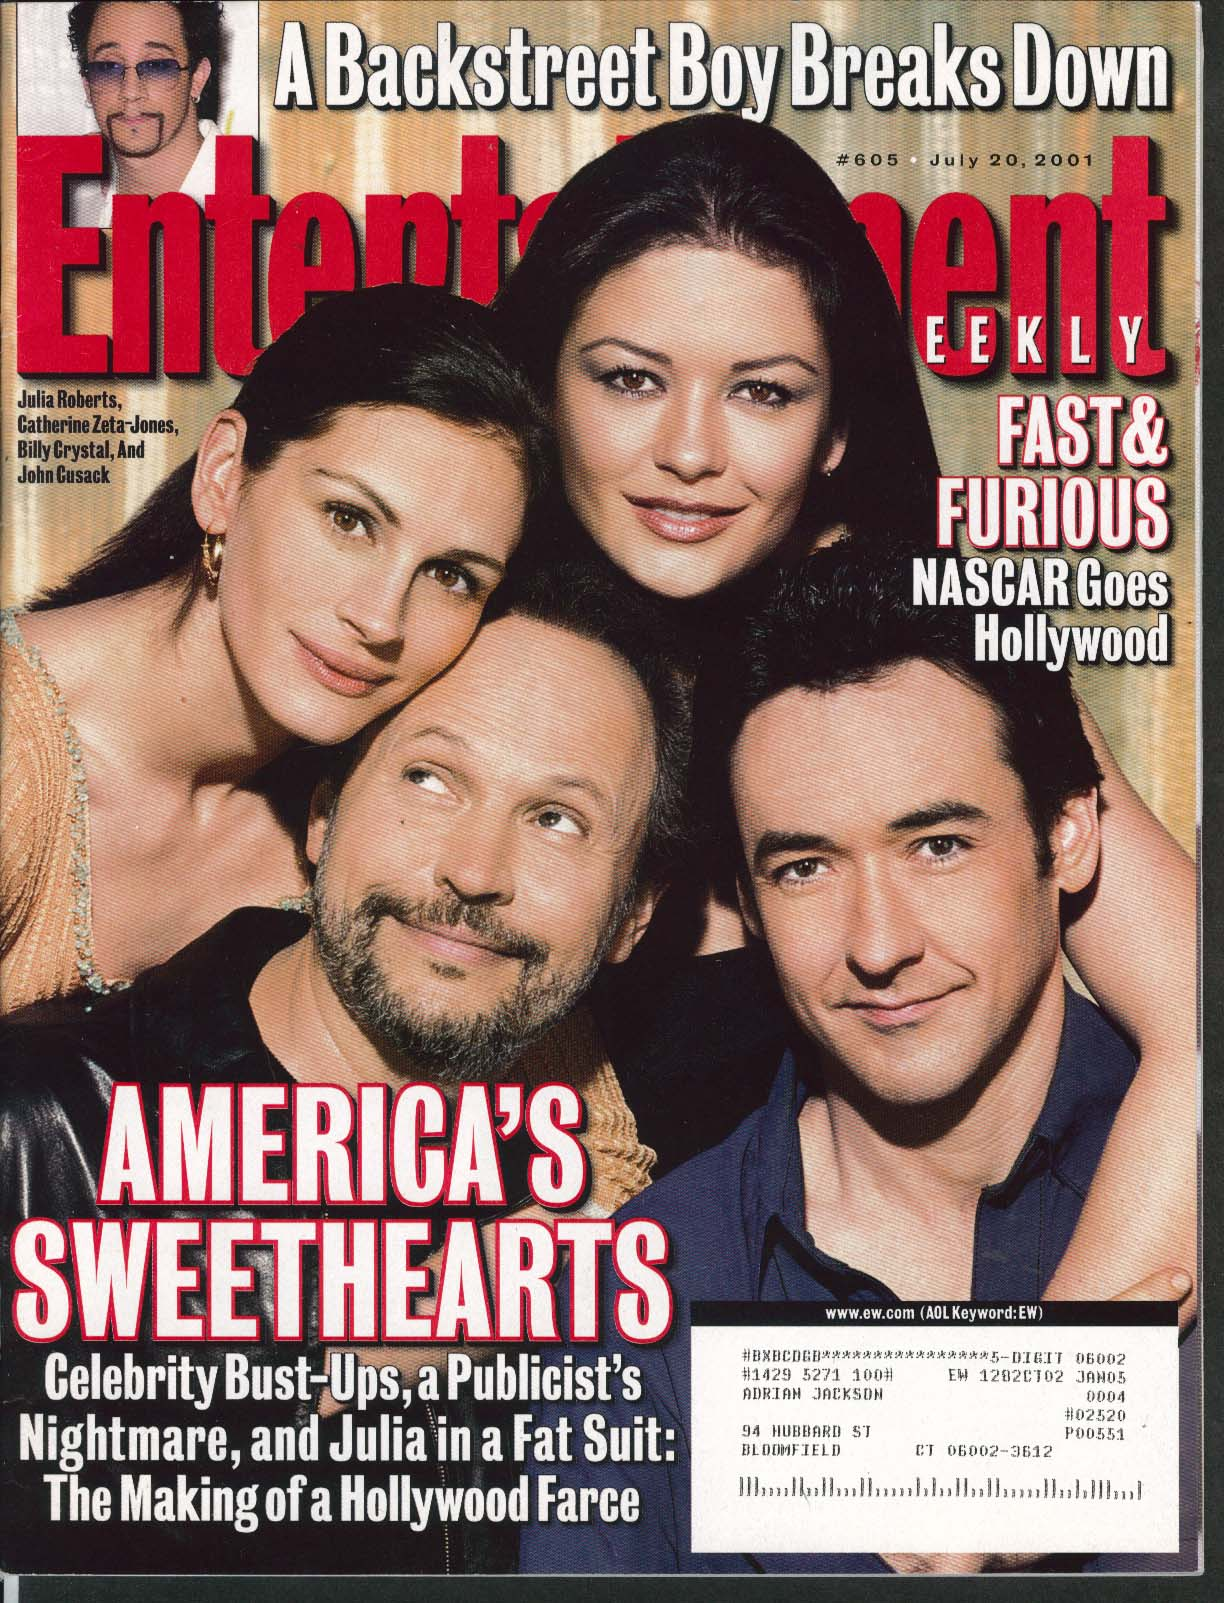 ENTERTAINMENT WEEKLY #605 Billy Crystal Julia Roberts Marlon Brando ++ 7/20 2001